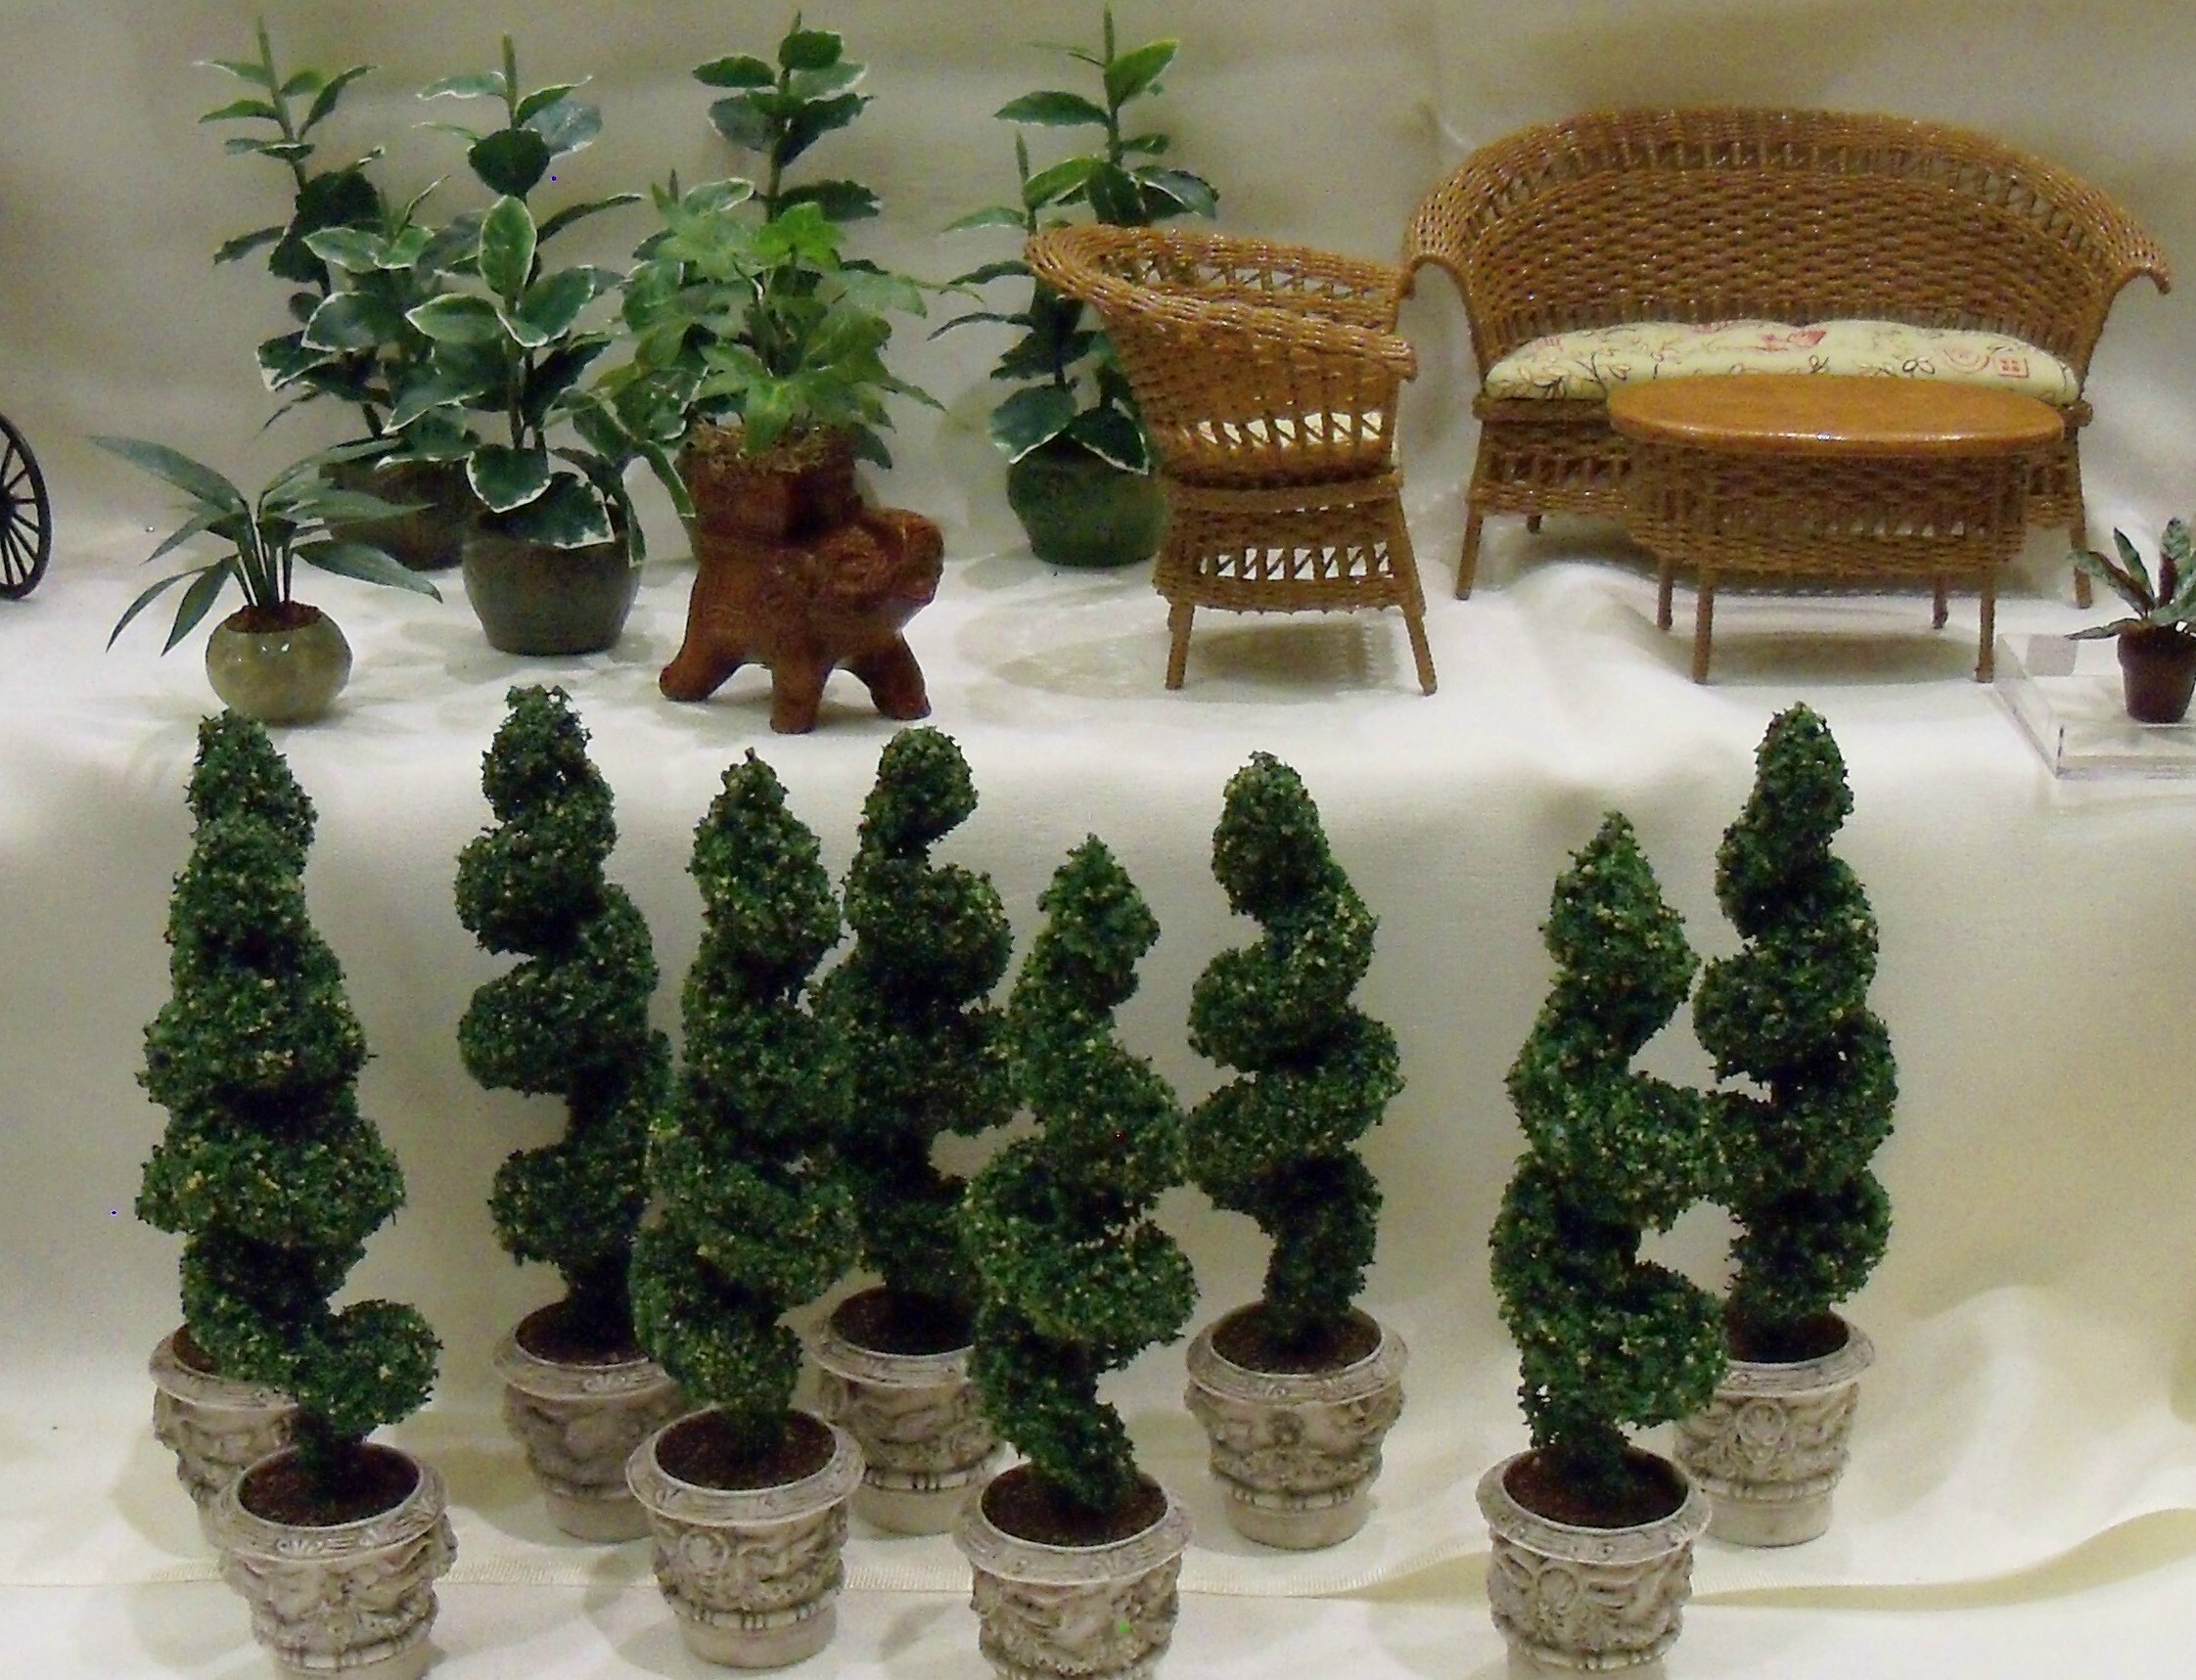 Spiral shape topiaries